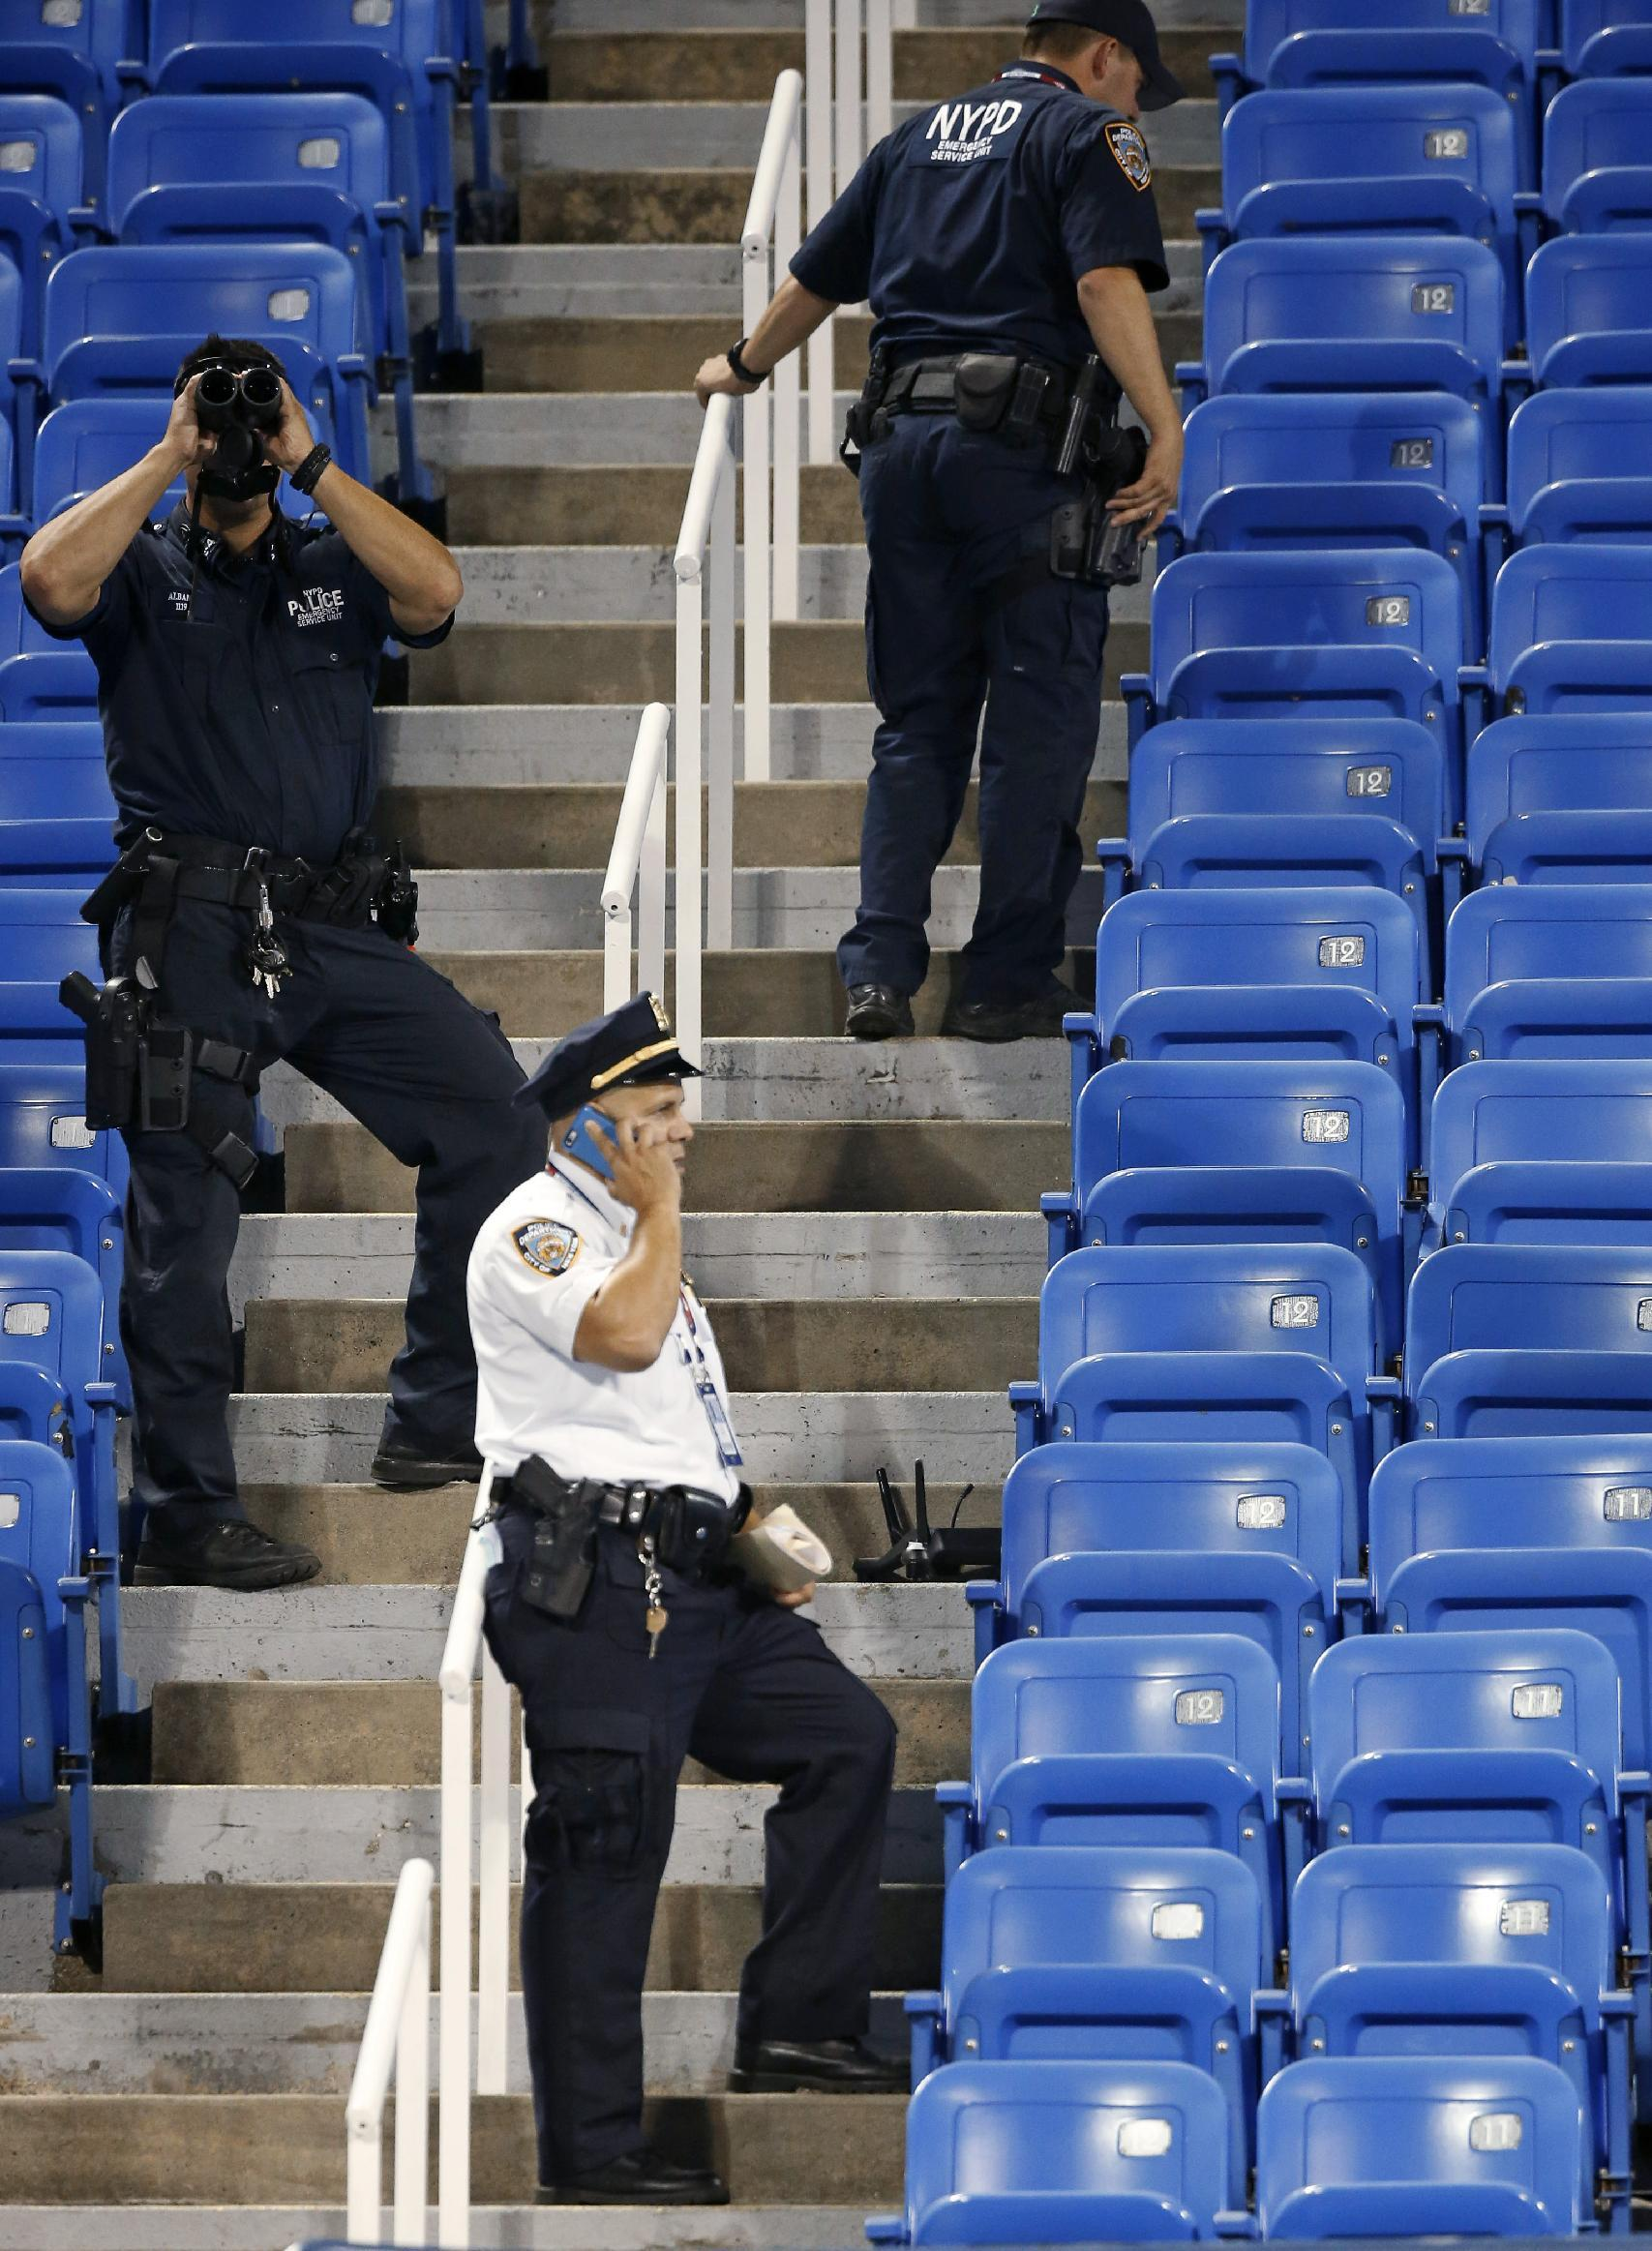 Tennis officials eye security after drone crashes at US Open